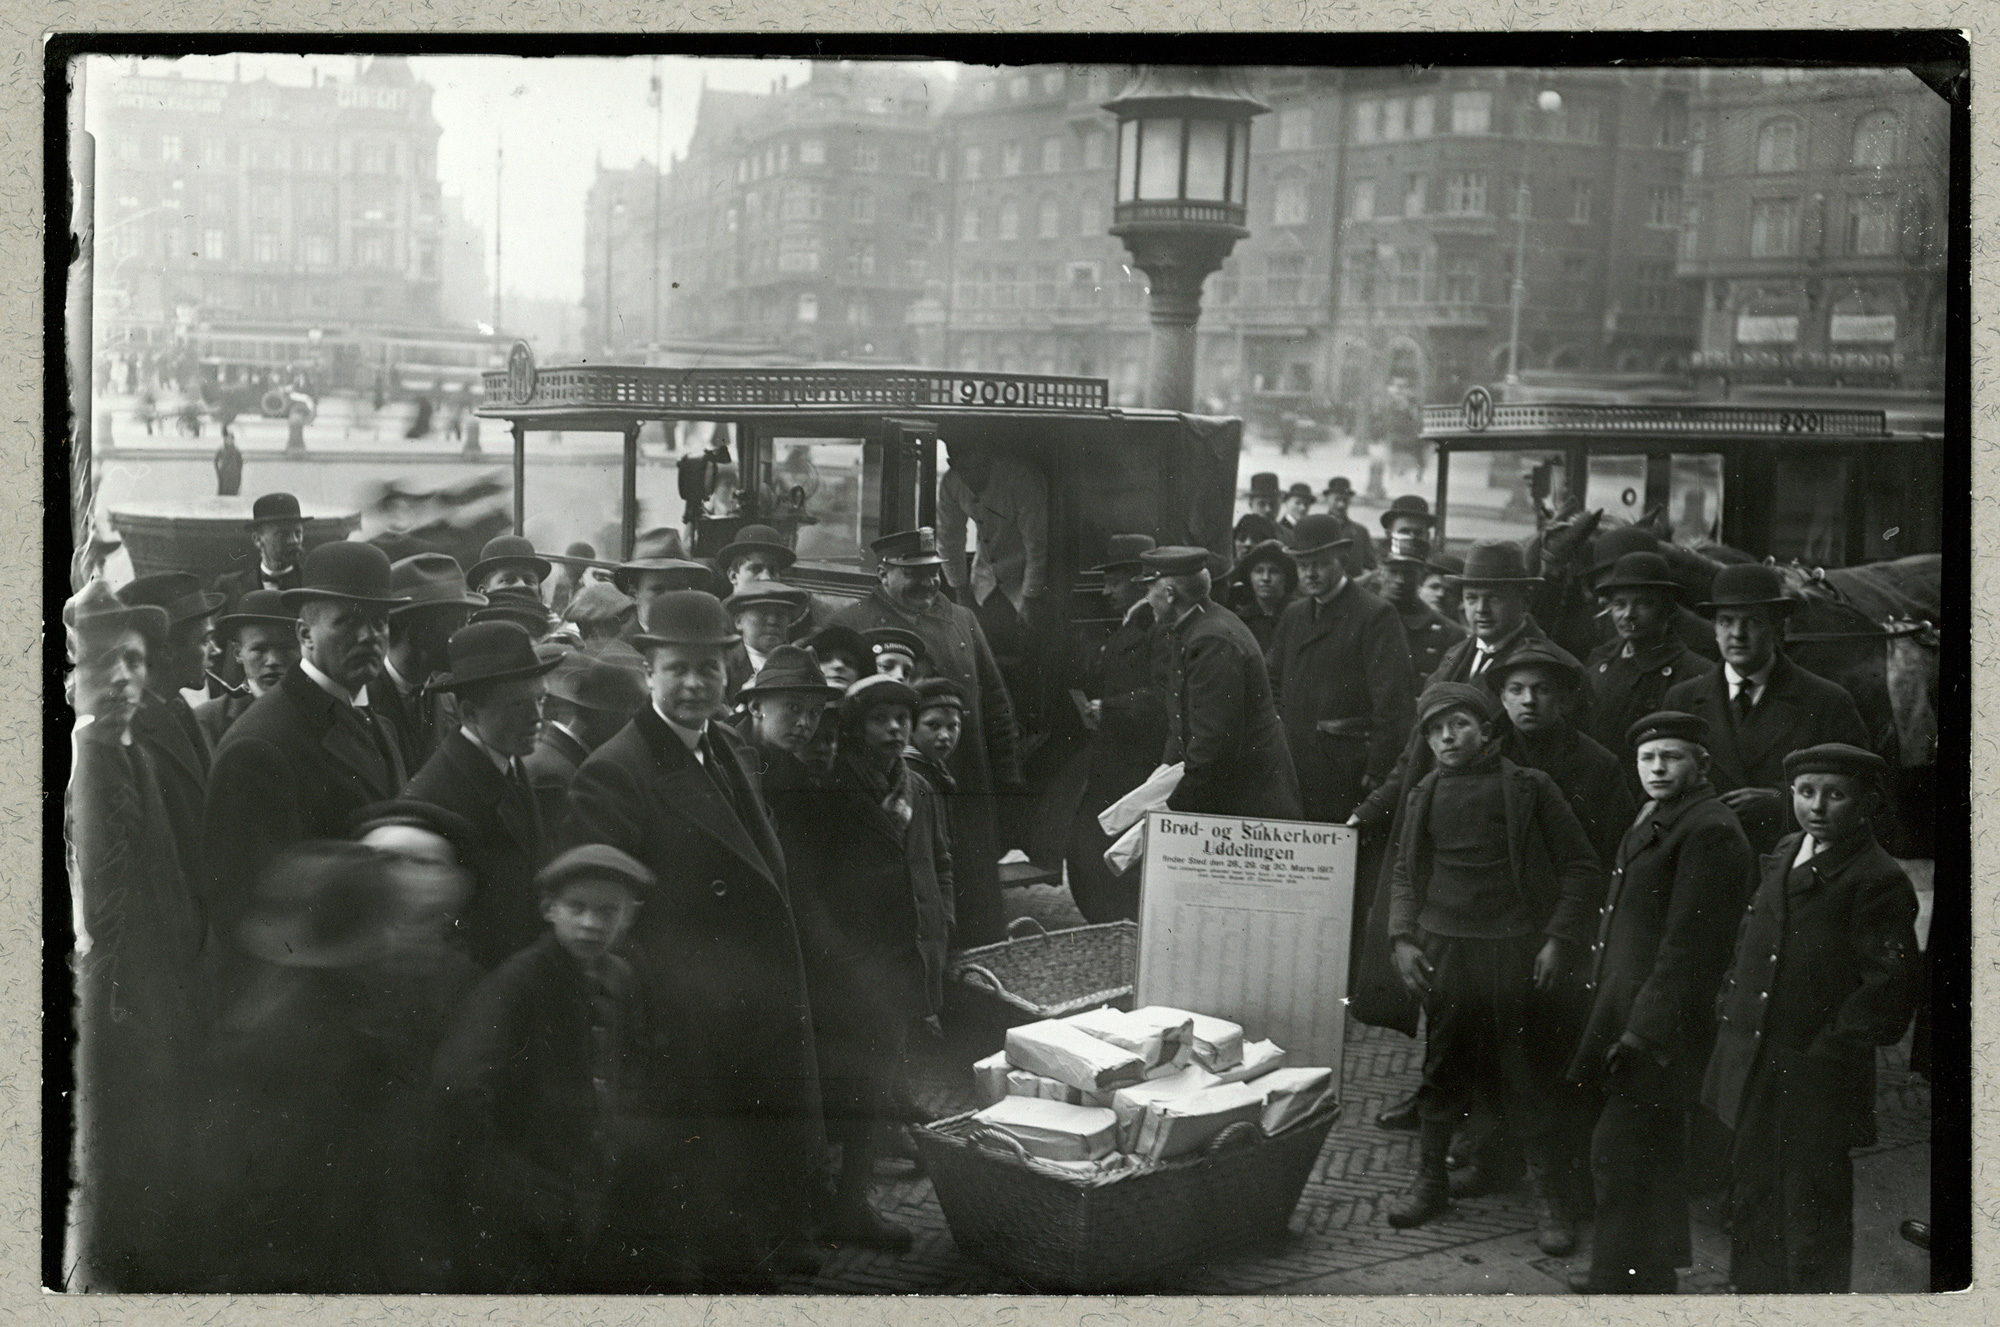 This photograph shows a queue for food ration stamps in the square of Rådhuspladsen, Copenhagen, March 1917.